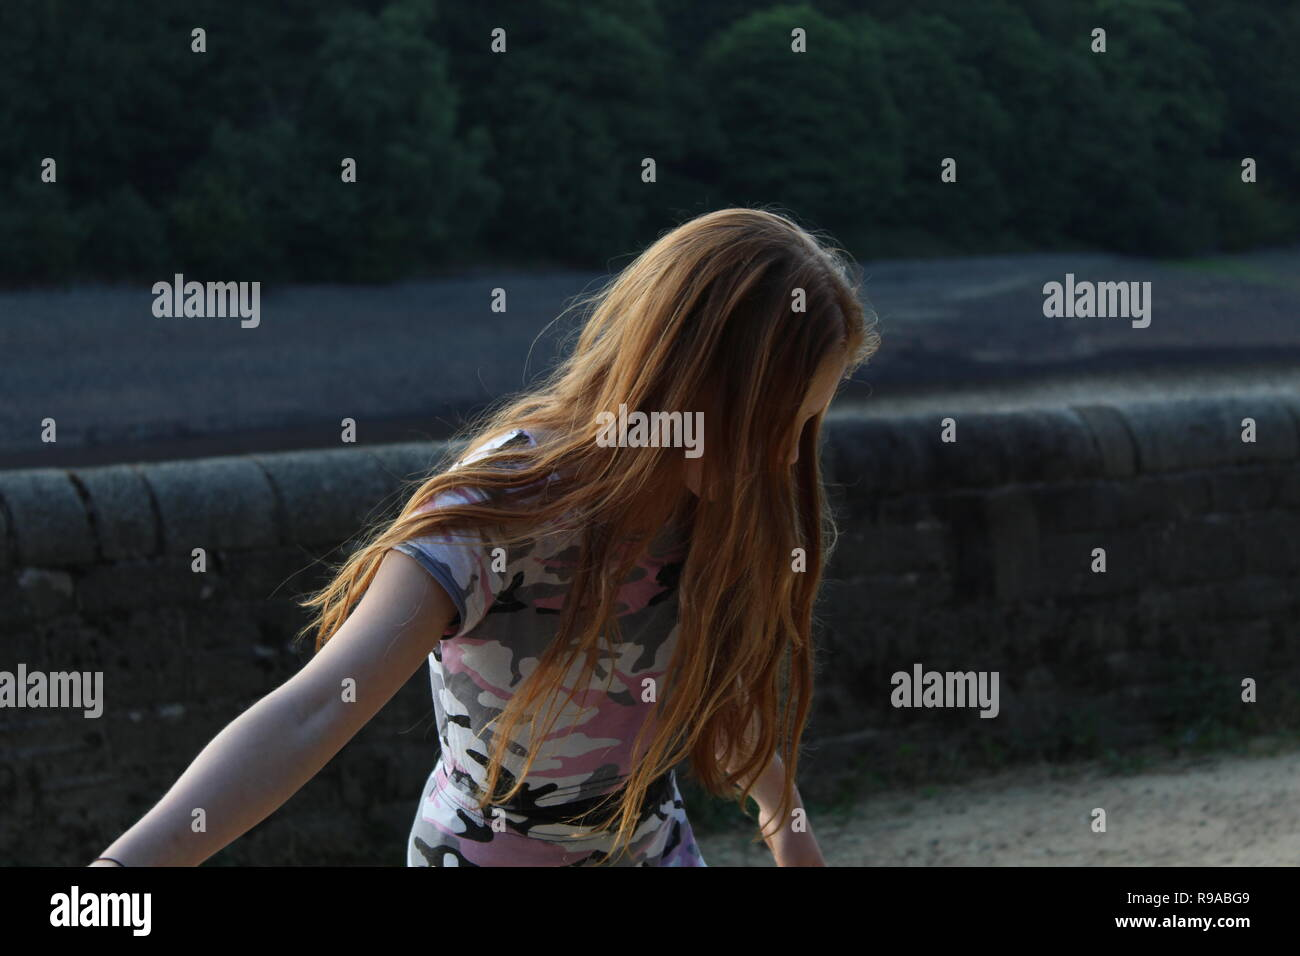 10 year old girl, long ginger hair - Stock Image